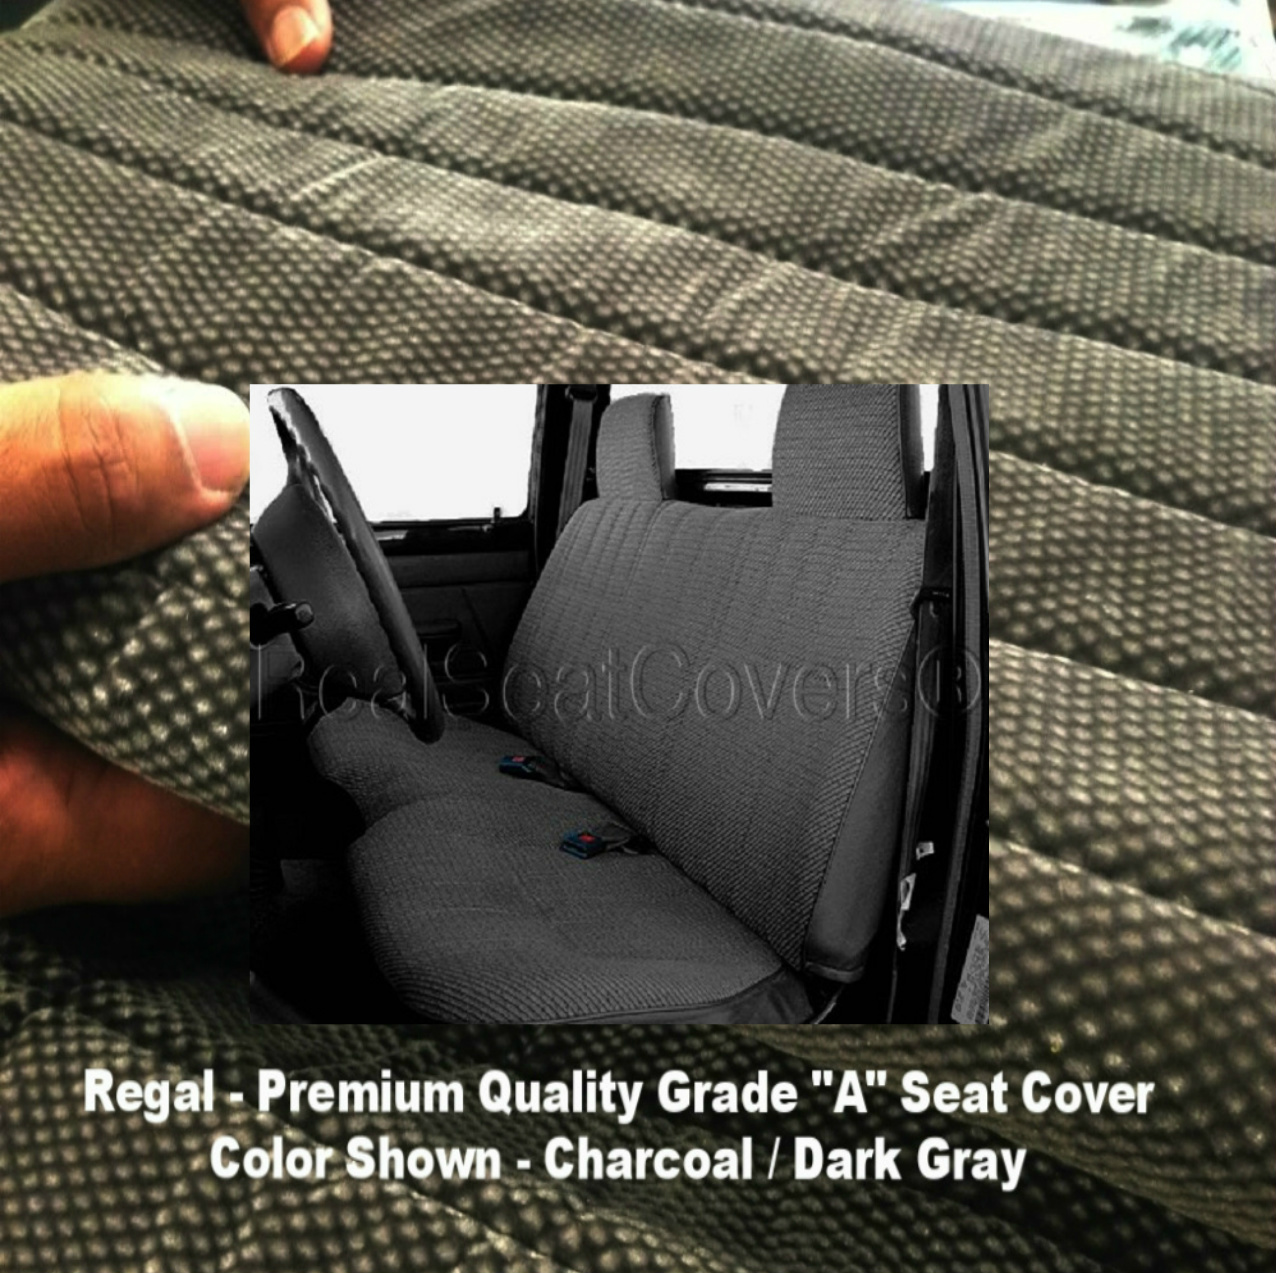 Toyota Pickup 1989 - 1995 Front Solid Bench A25 Seat Cover Molded Headrest Notched Cushion Charcoal, Dark Gray